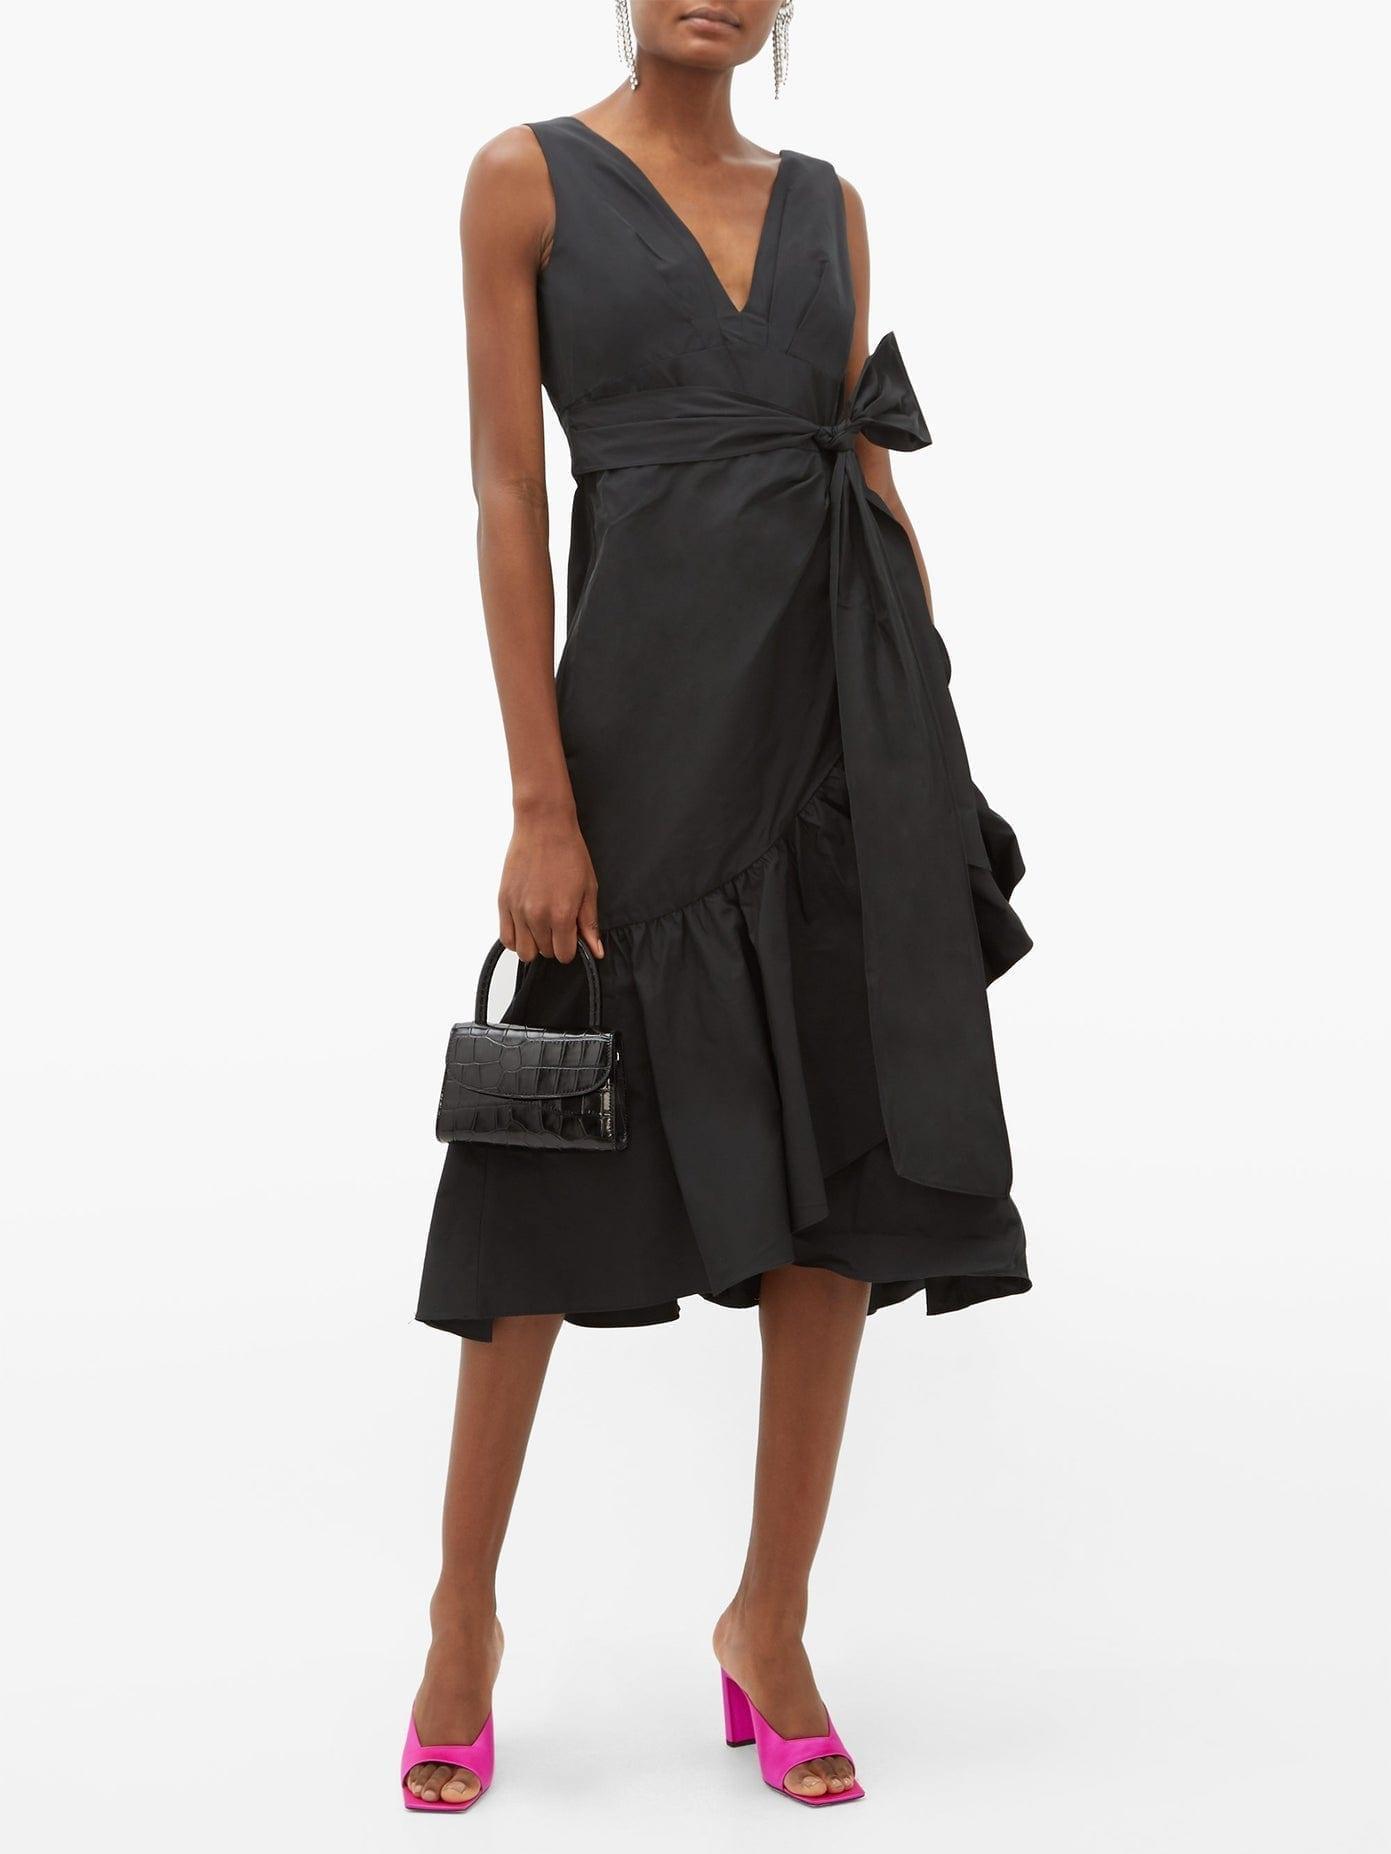 REBECCA TAYLOR Ruffled Taffeta Wrap Dress